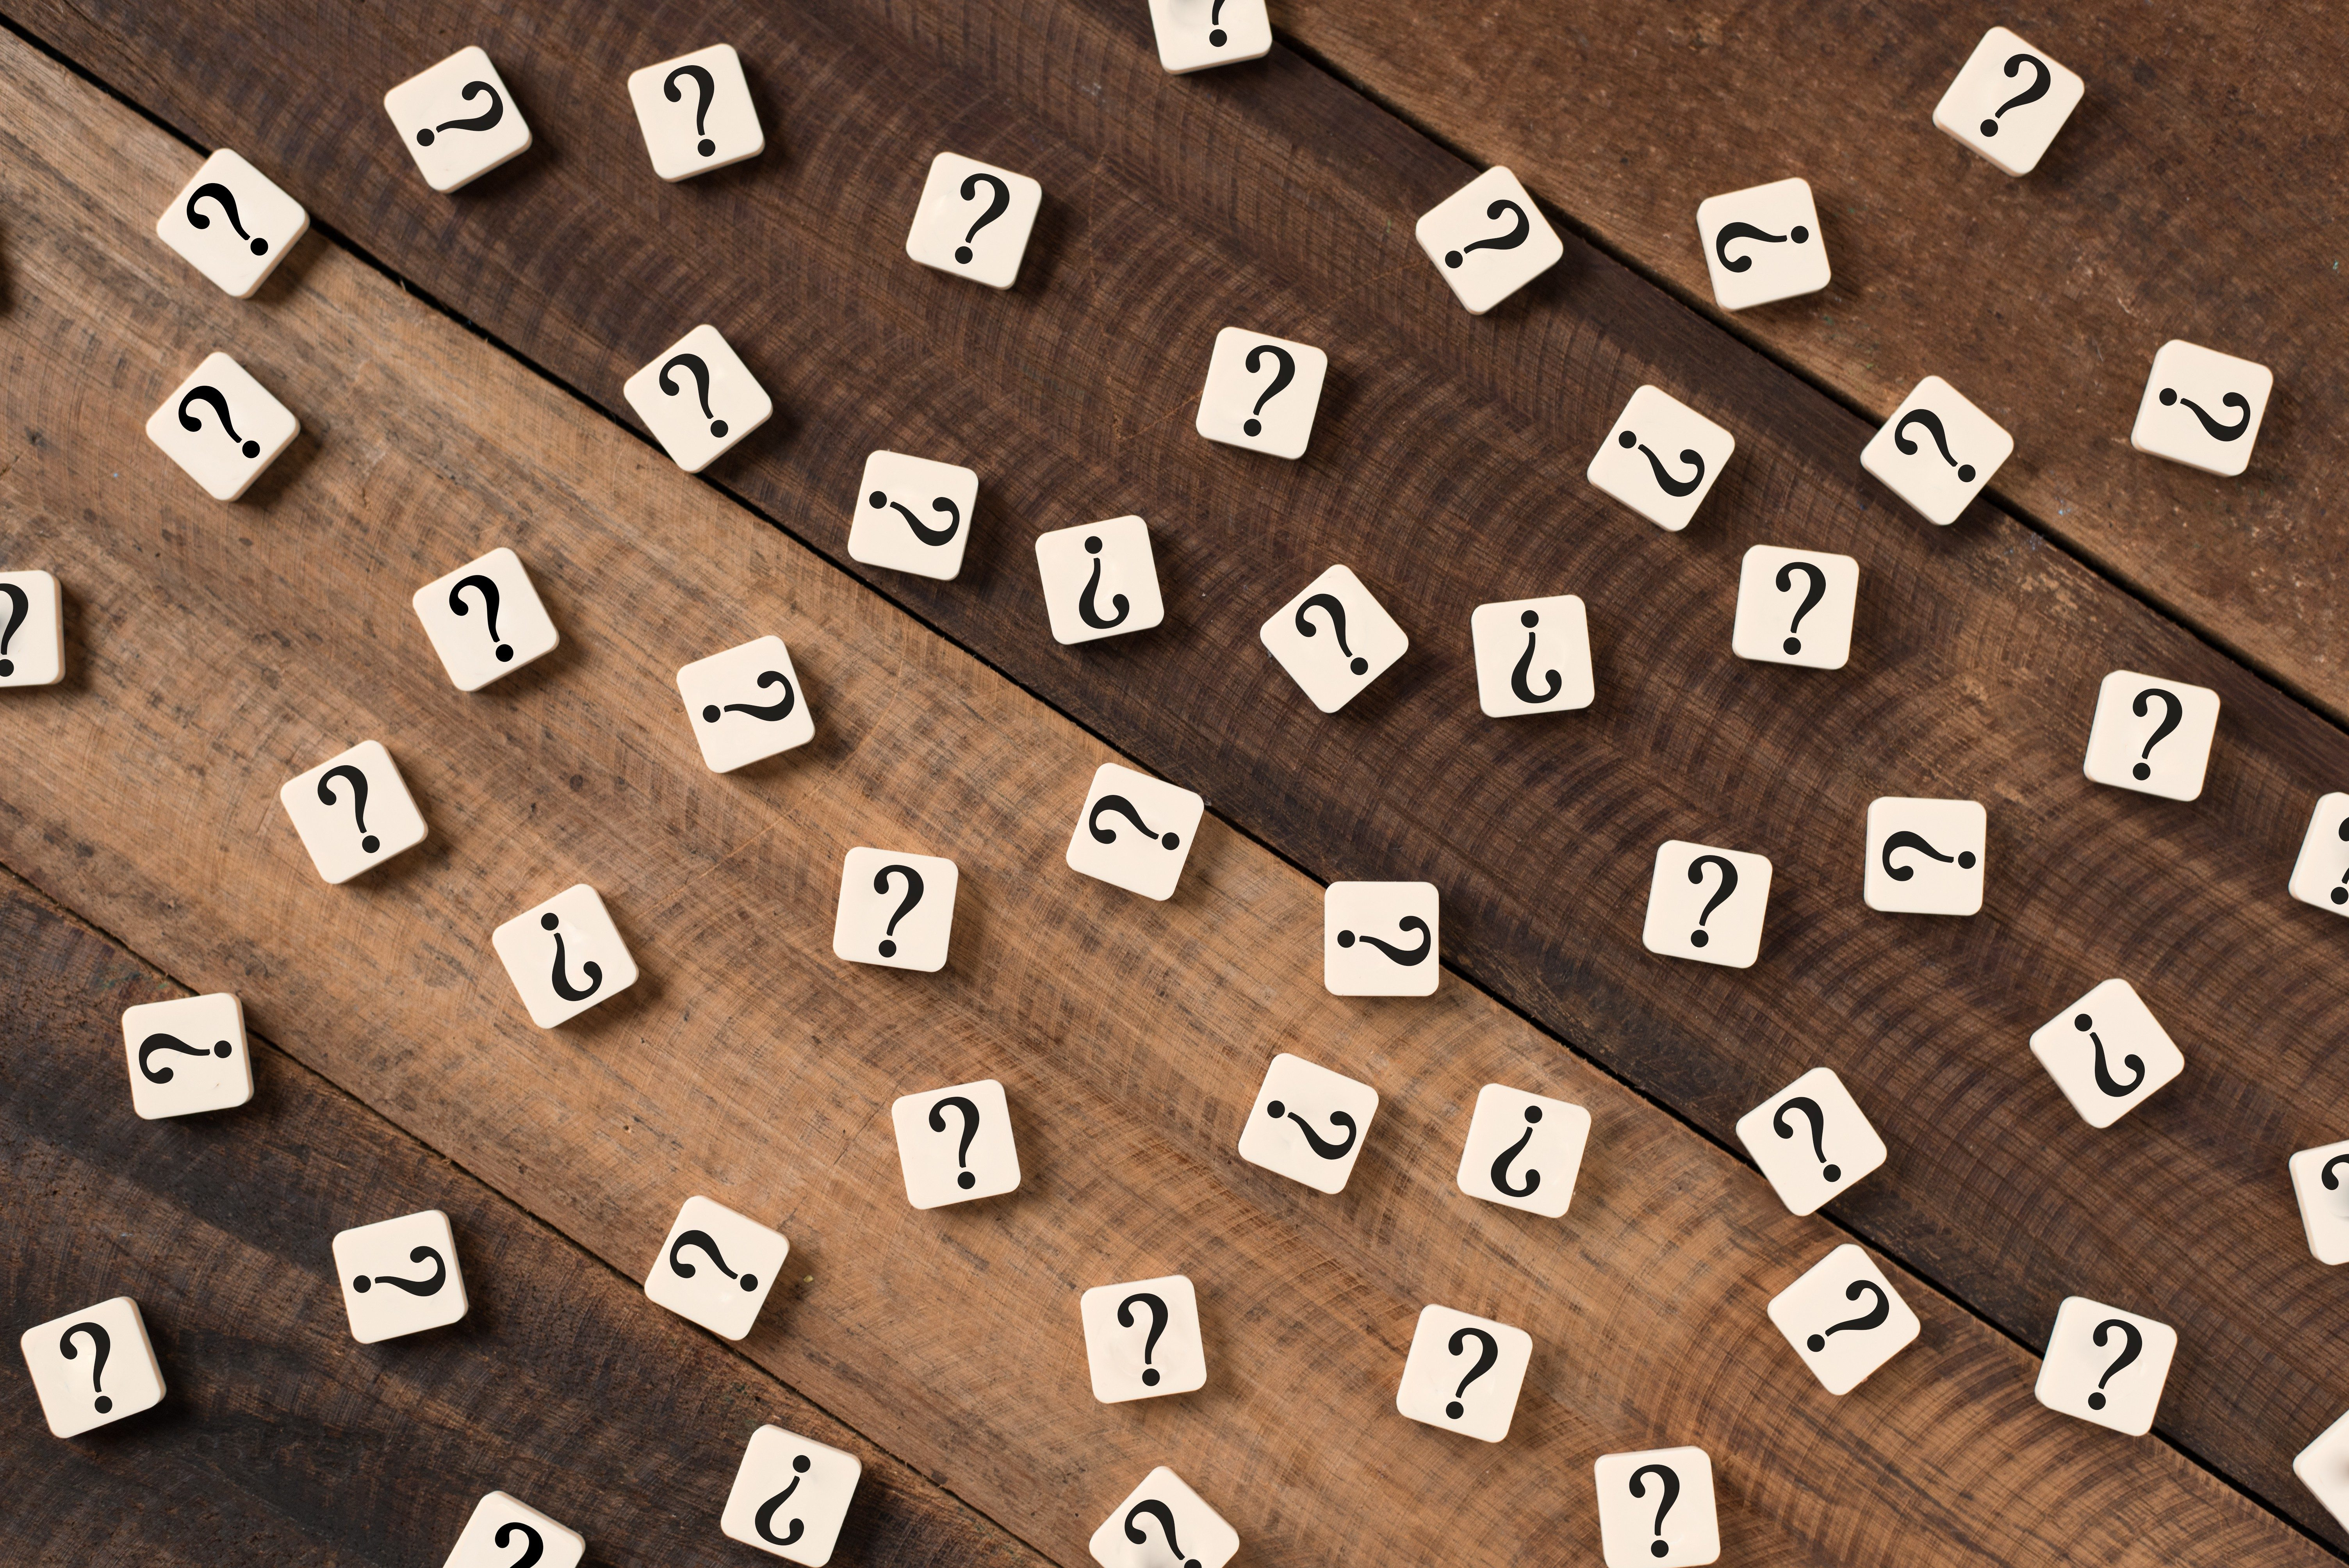 Question mark on alphabet tiles. question mark on wooden table background